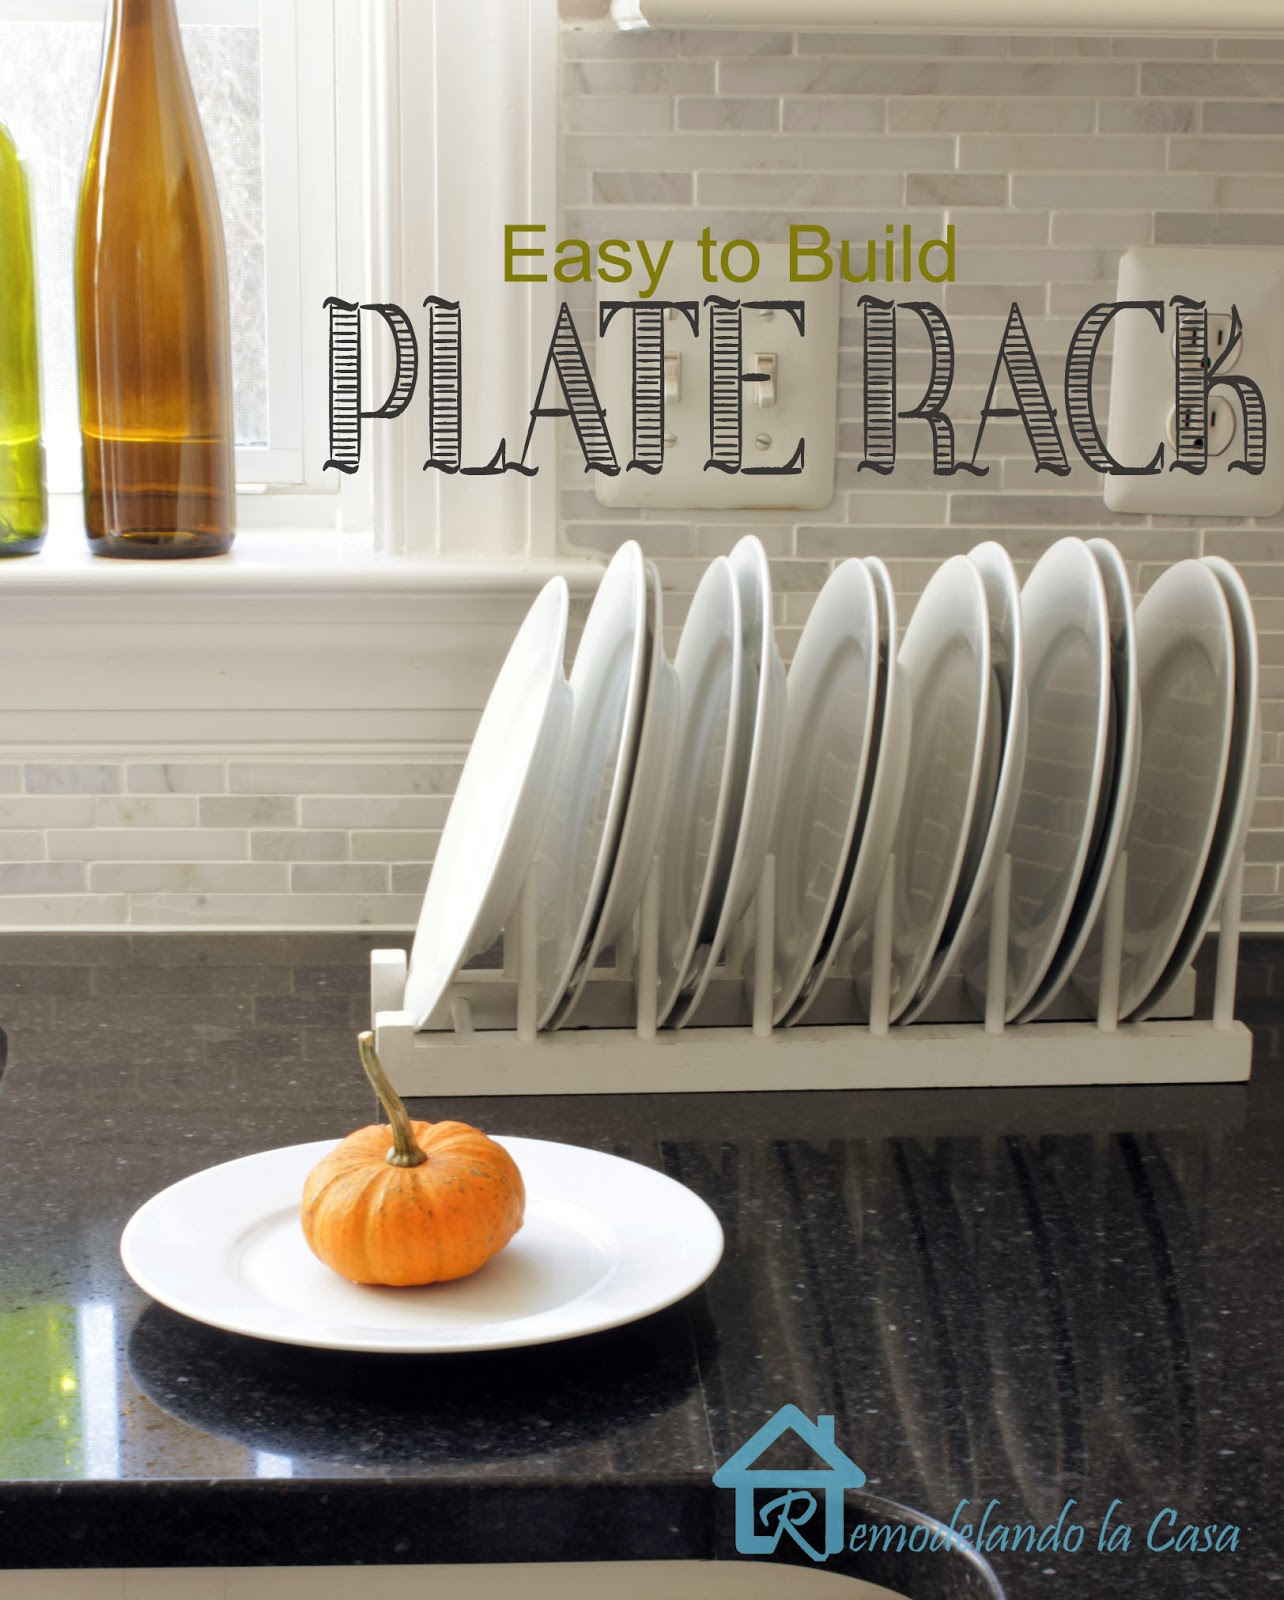 diy - plate rack - stand alone & Easy to Build Plate Rack - Remodelando la Casa